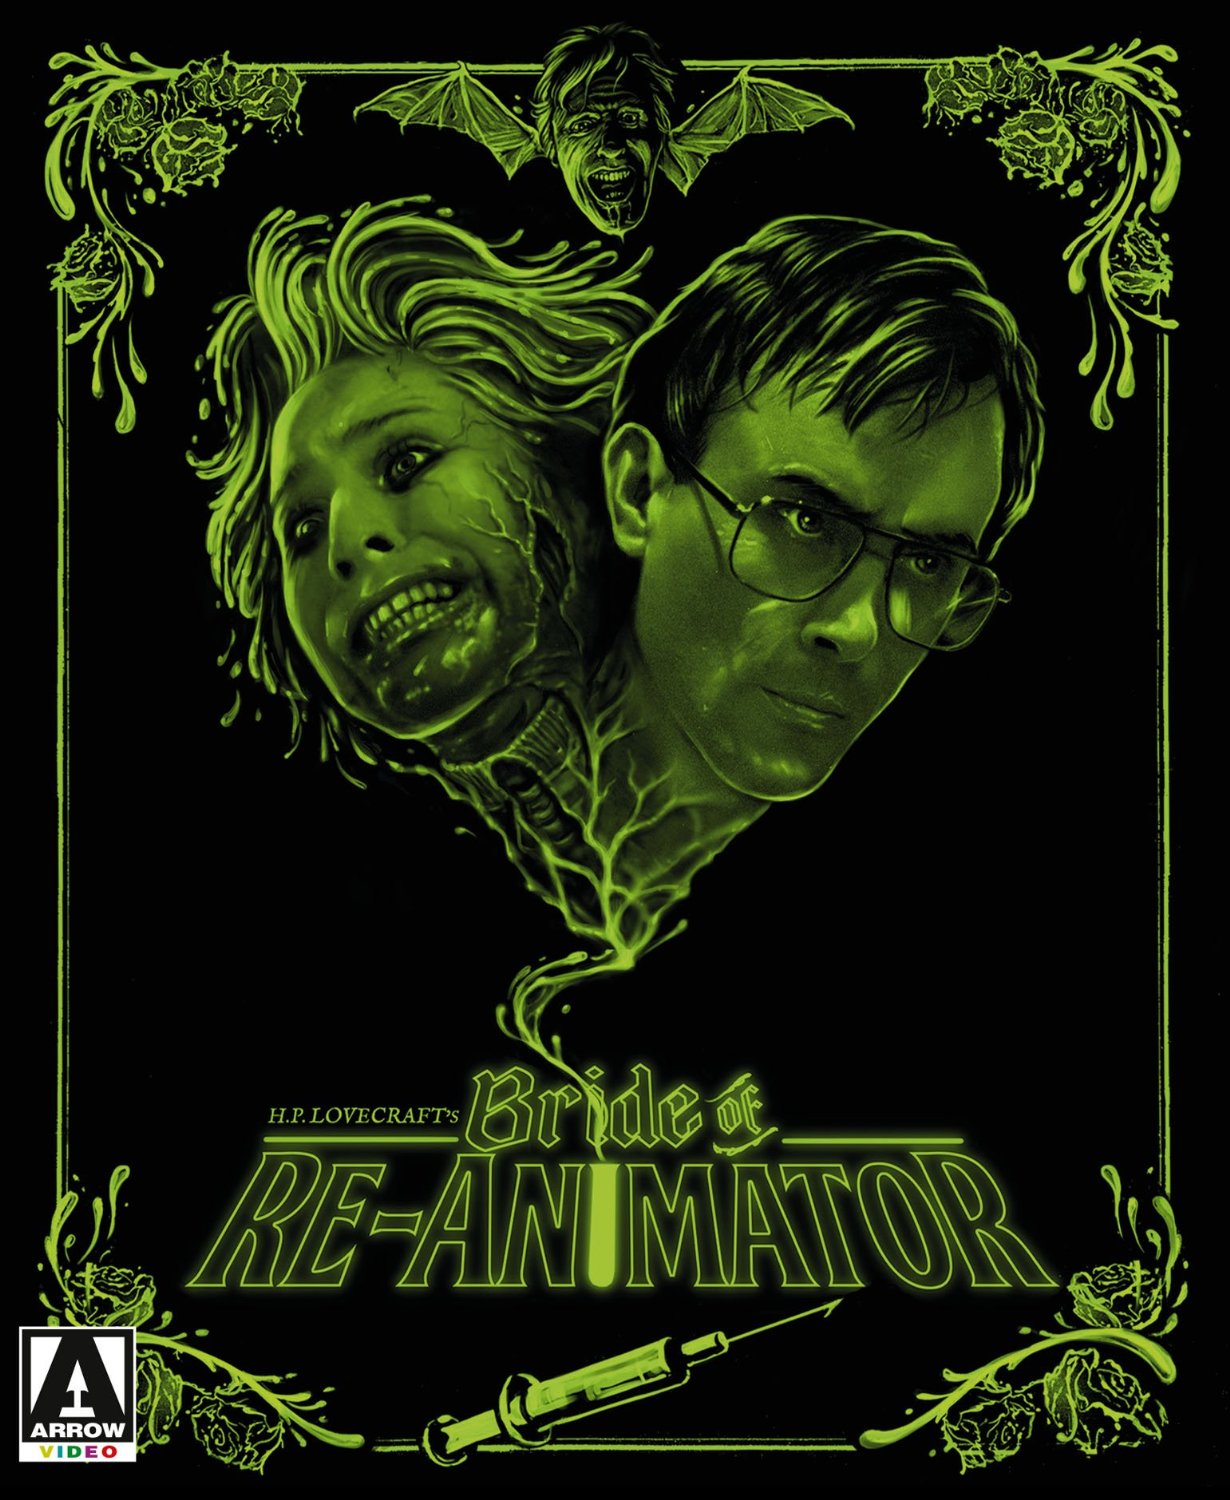 Buy Bride of Re-Animator (Limited Edition)